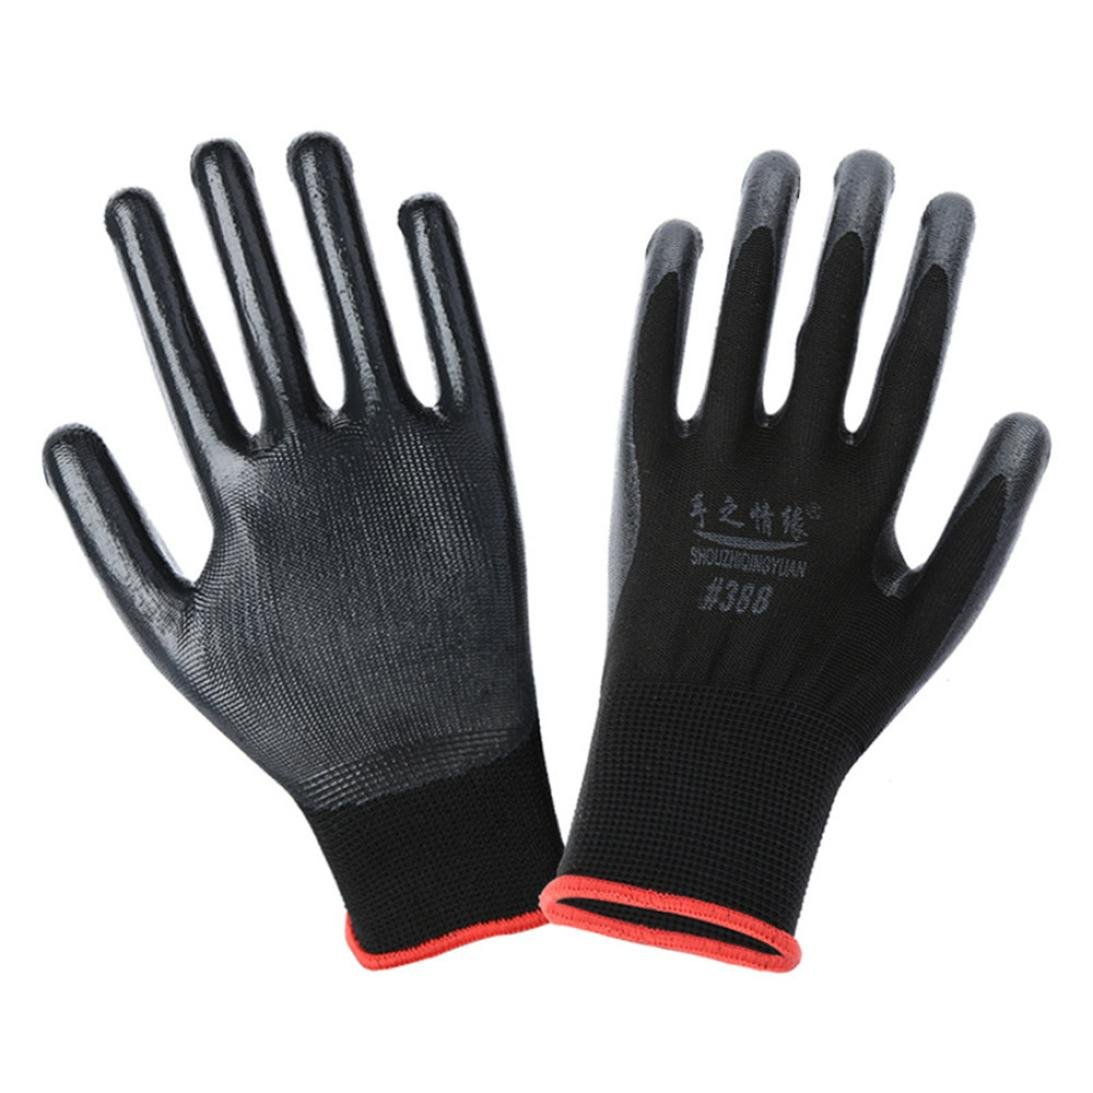 Botrong Wearable Coated Gloves Unisex Automotive Work Indoor Outdoor Use (Black)